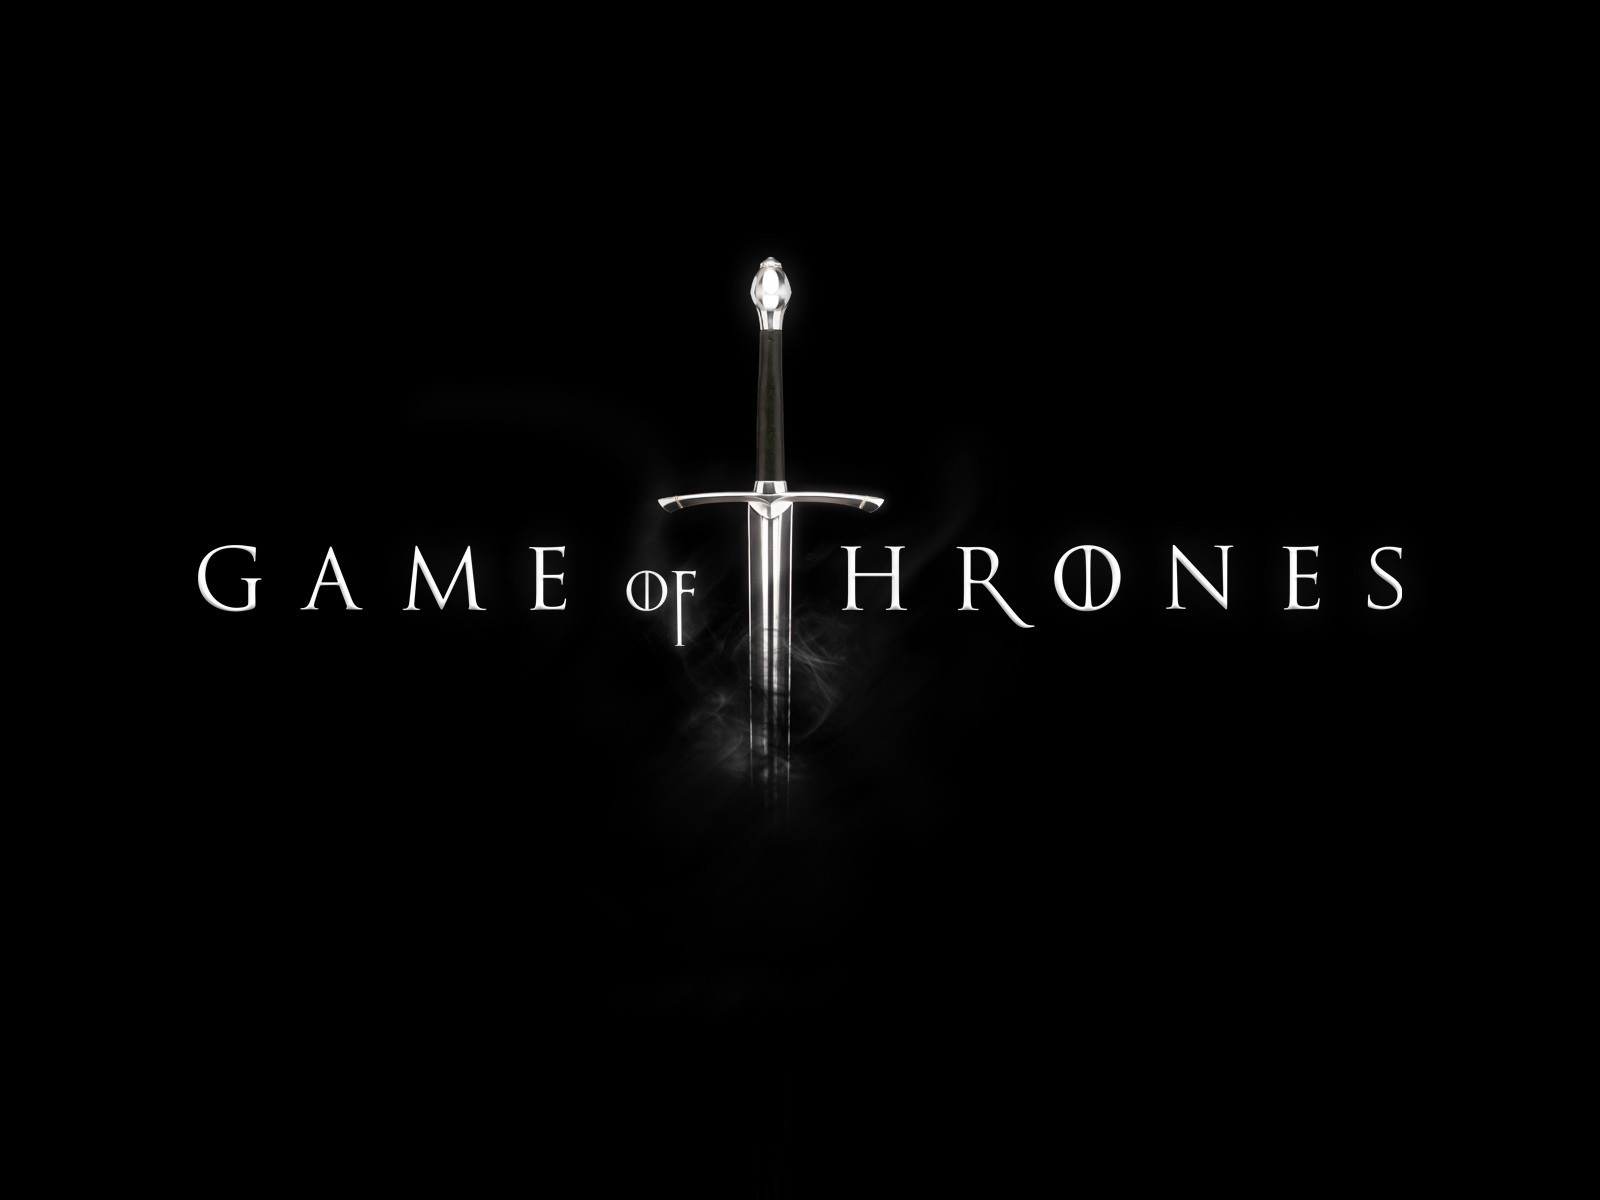 Barbie Hd Wallpapers Free Download Game Of Thrones Hd Wallpapers Wallpaper202